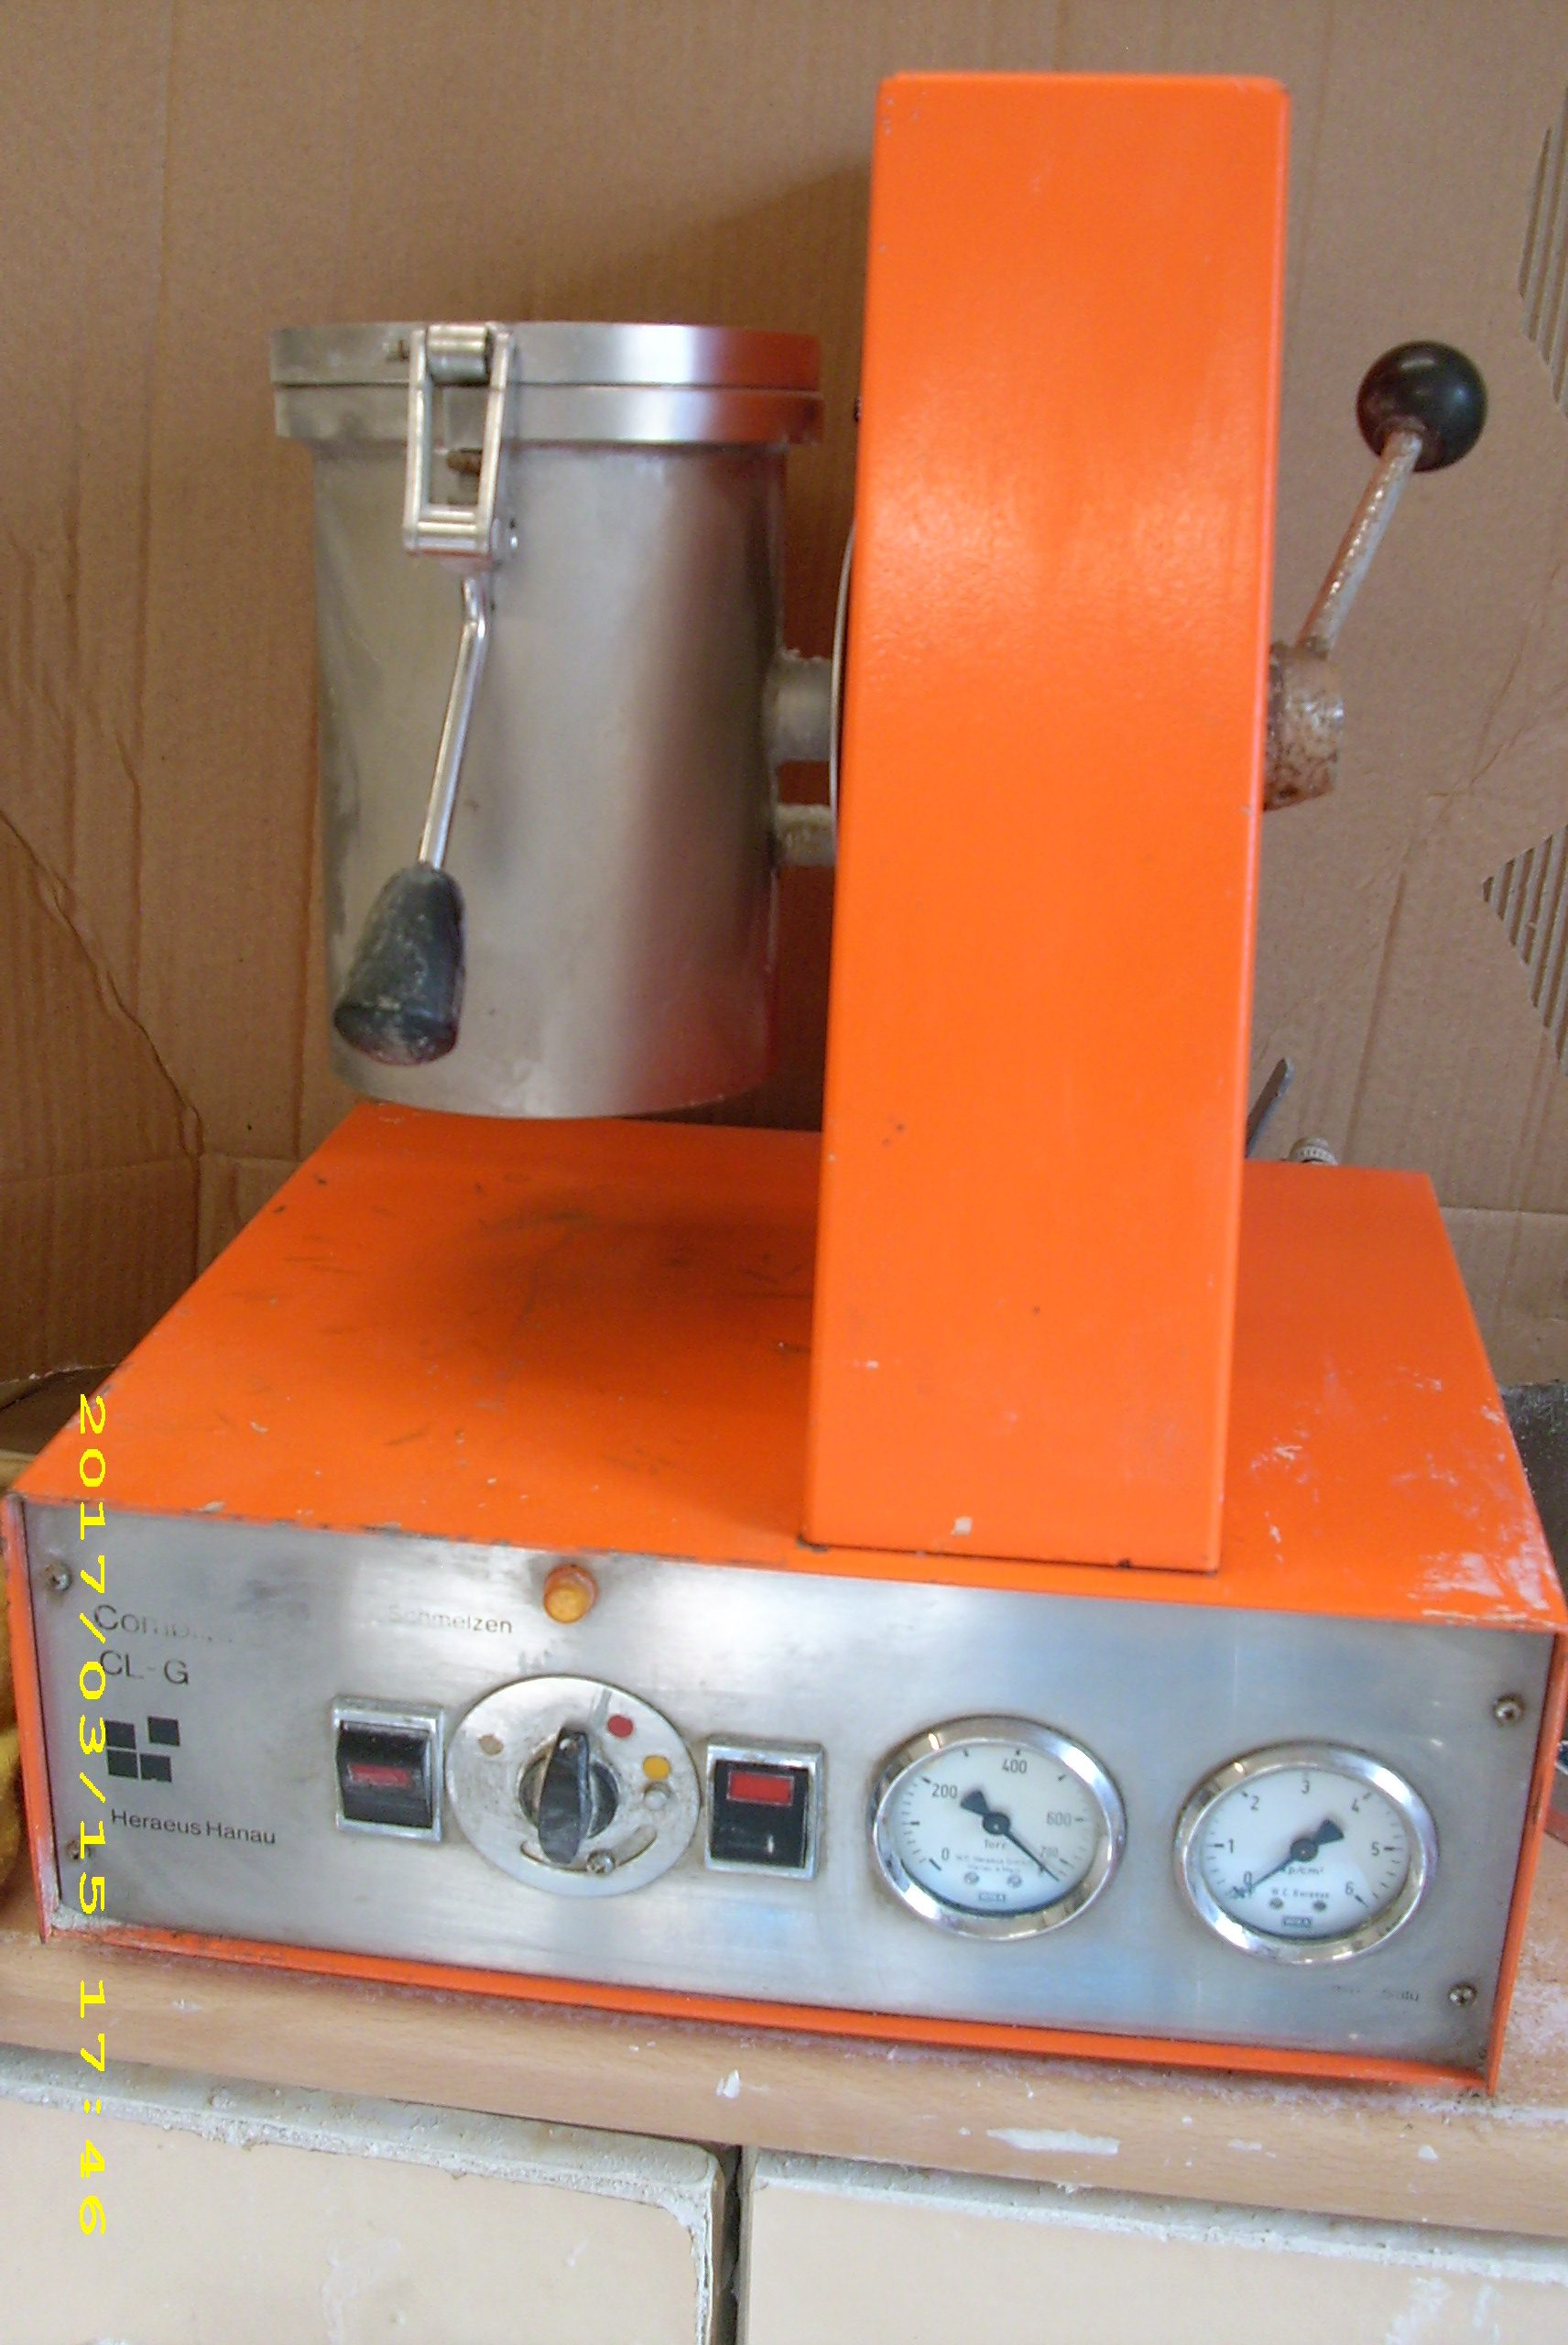 CLG casting machine will include matching furnace and vacum pump